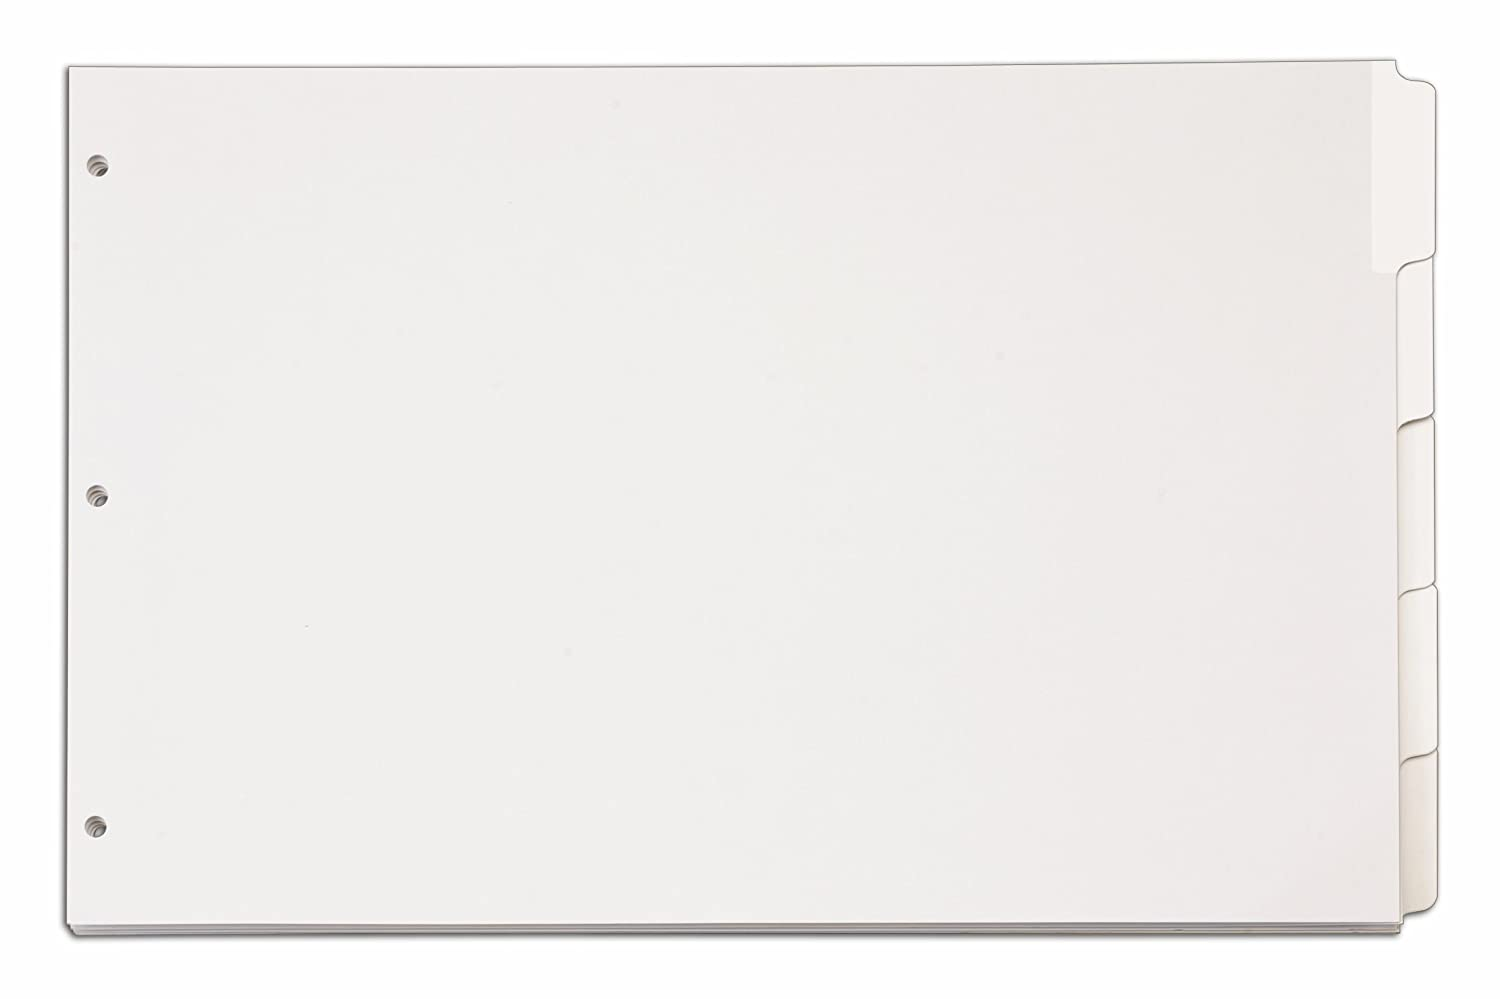 TOPS Cardinal 11x17 Write'n Erase Tab Divider, 5-Tab, White, (84270CB) TOPS Business Forms Inc.